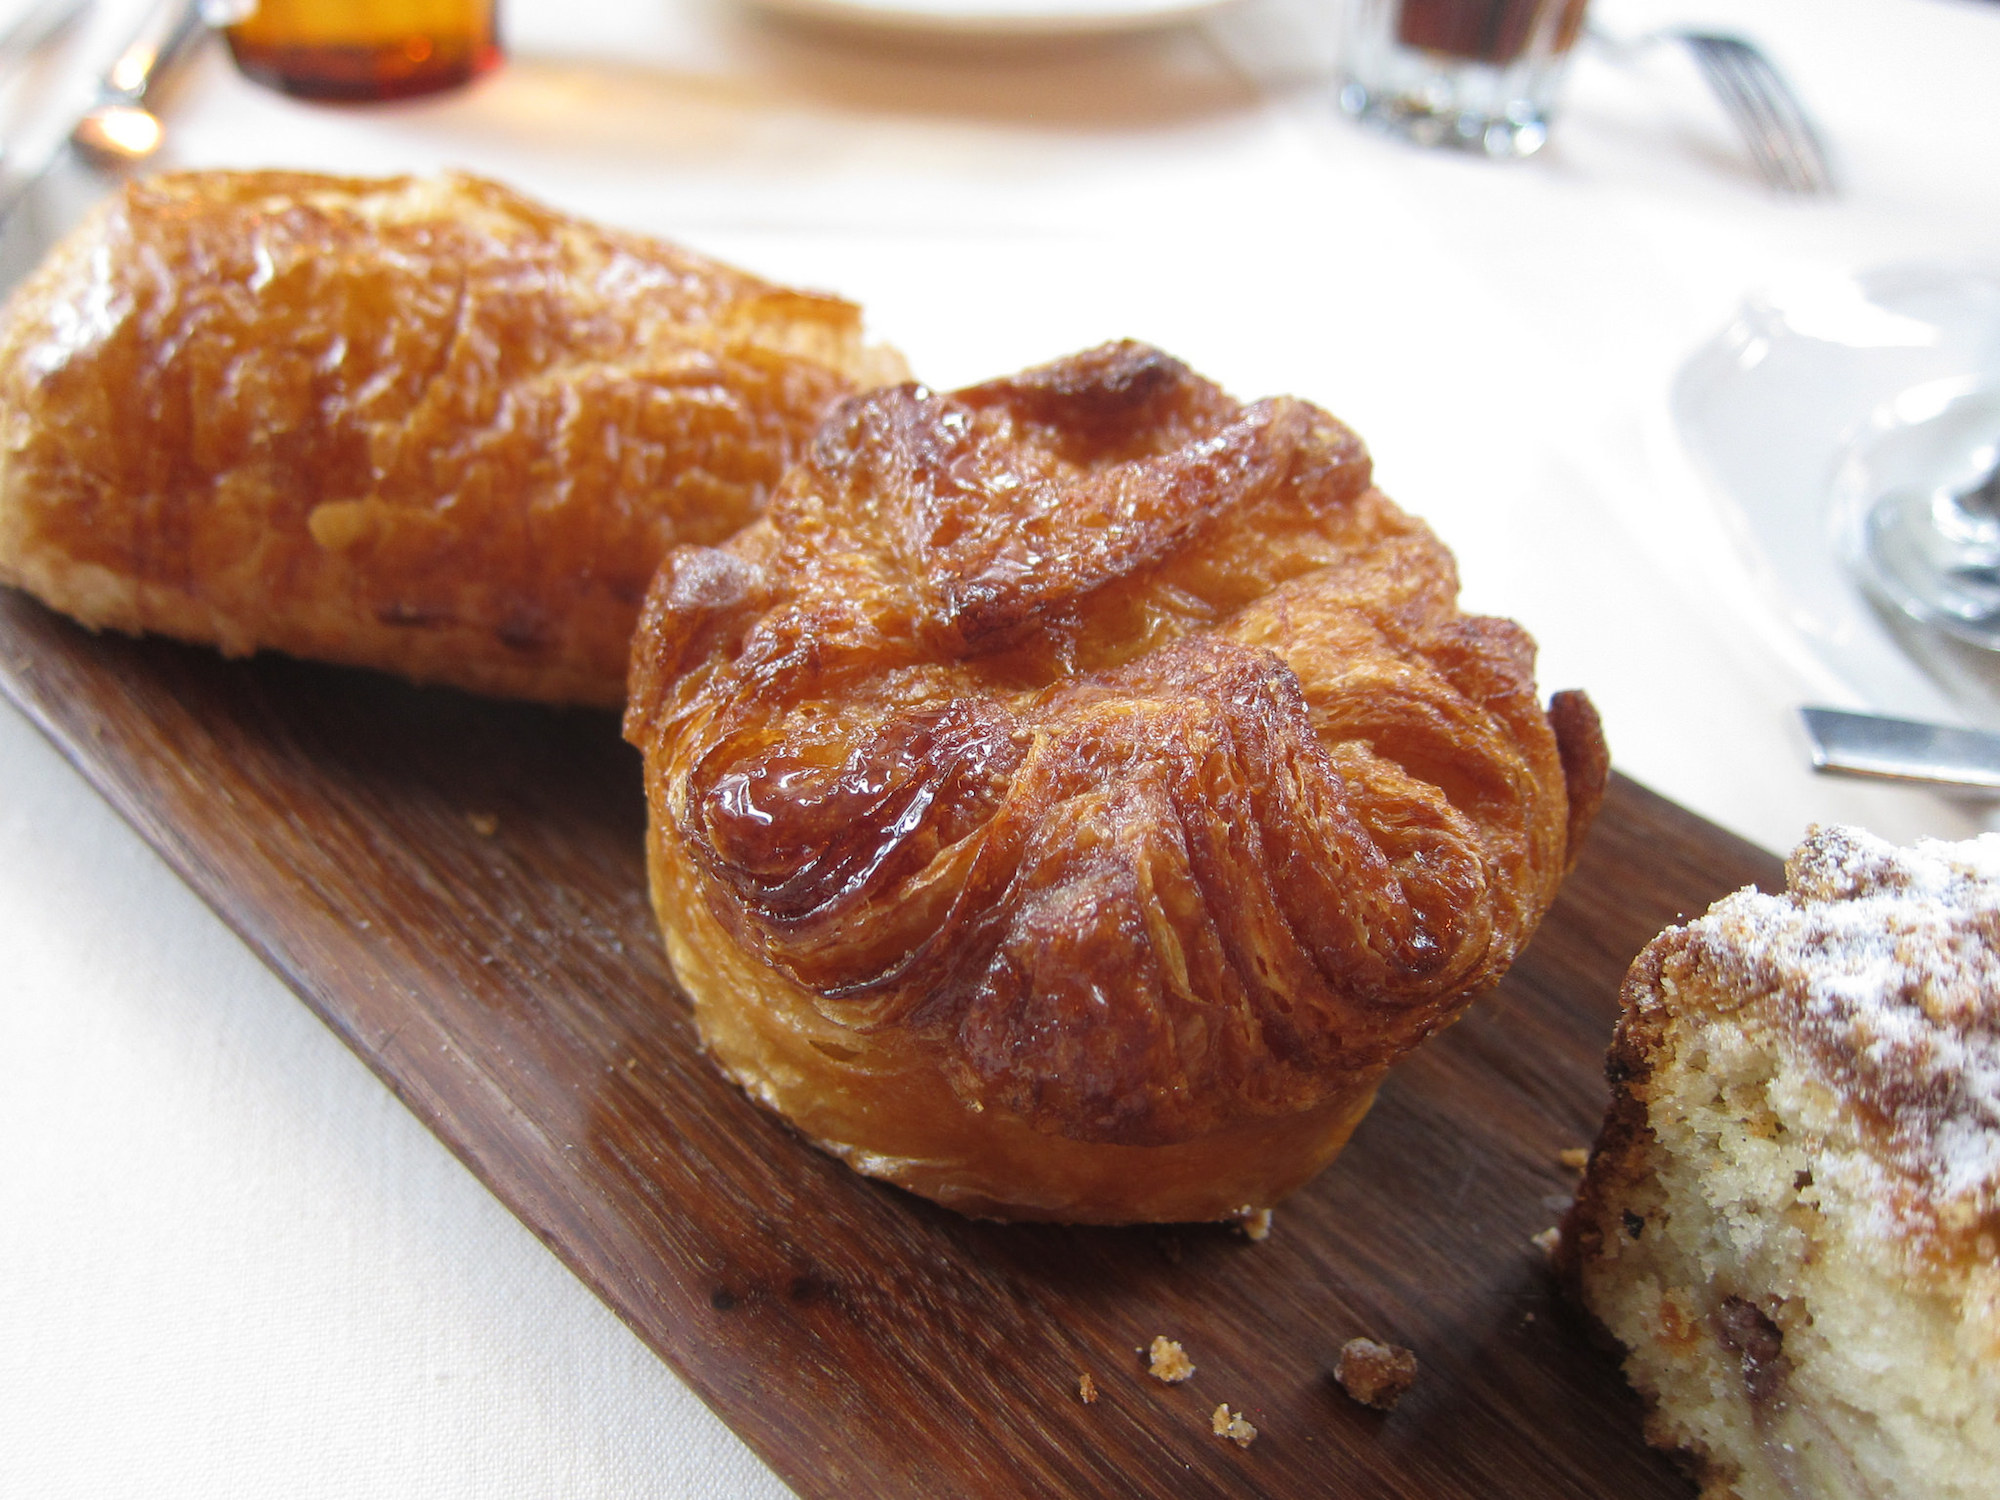 Here are our favorite Breton sights and the artisanal gastronomic flavors that accompany them.